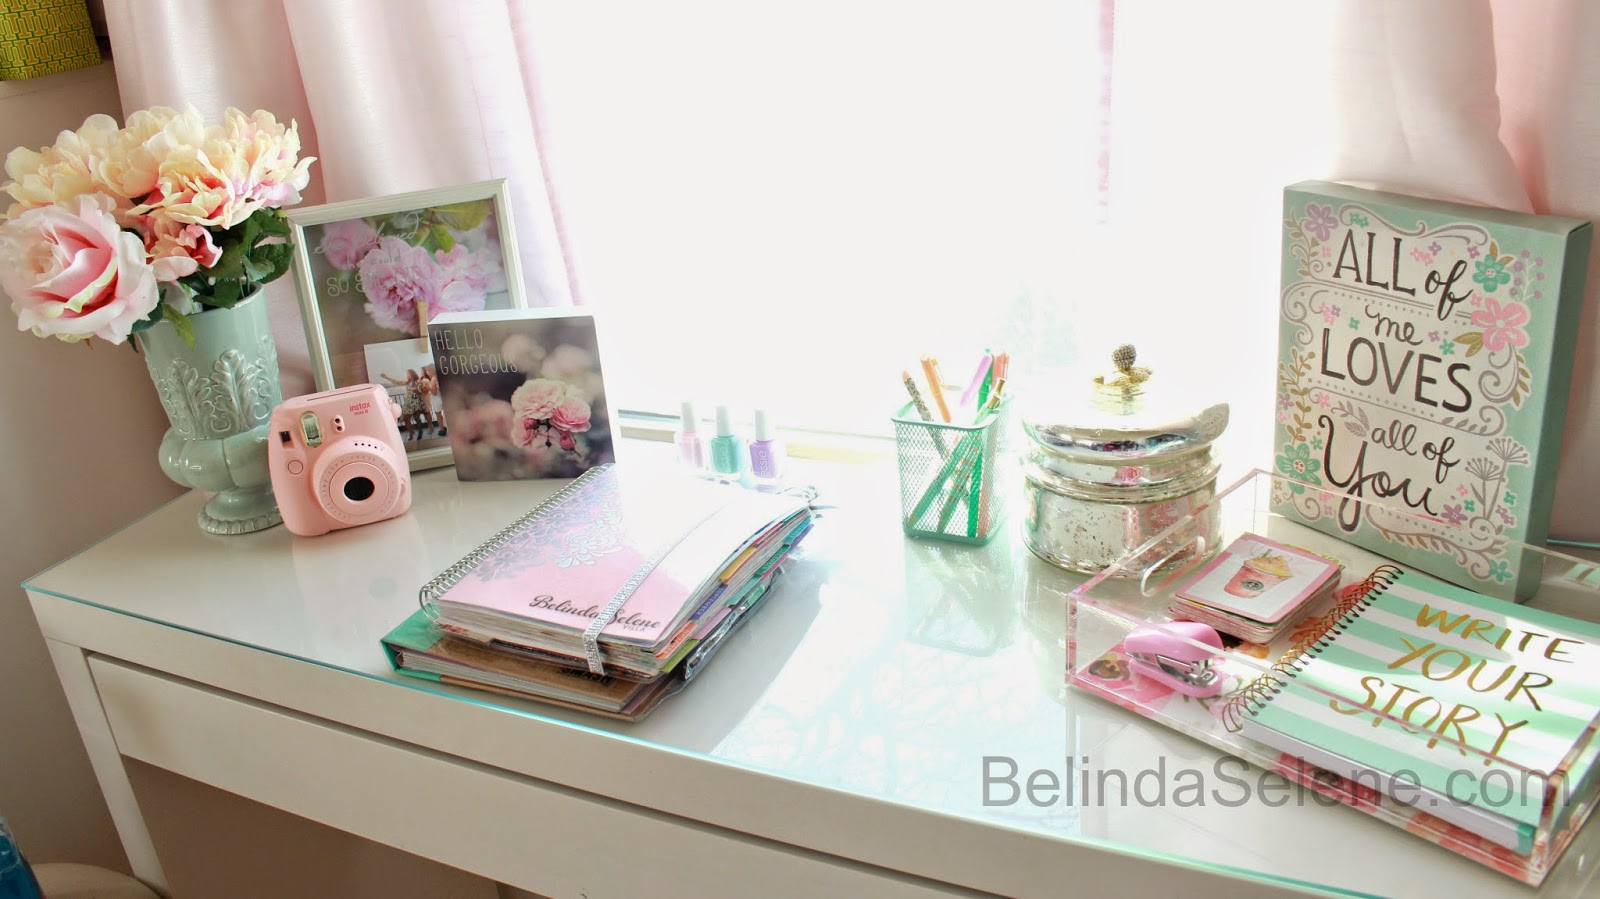 Belindaselene diy tumblr inspired office desk space for Pastel diy room decor